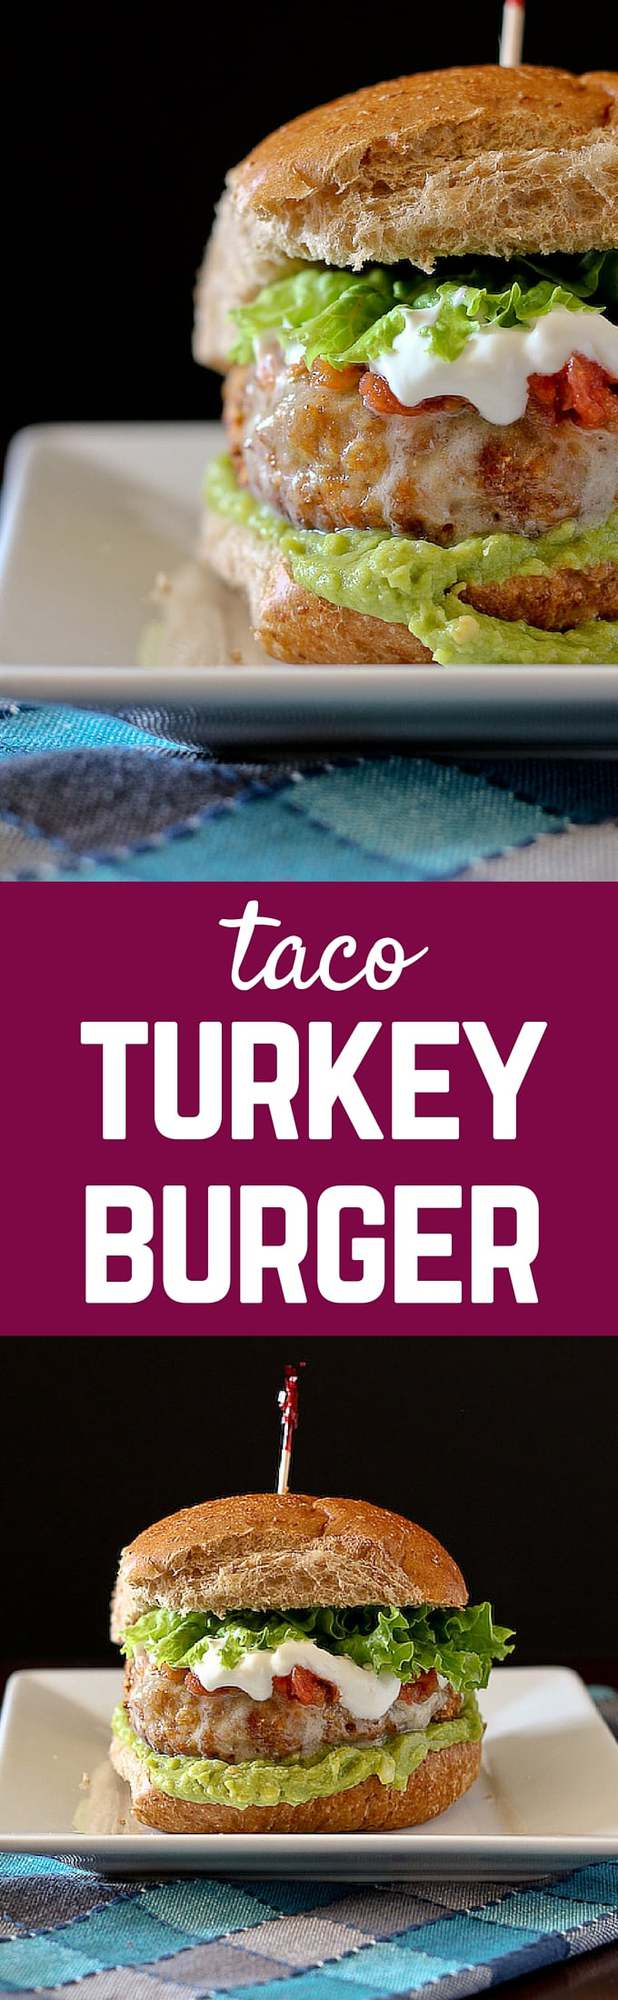 This taco turkey burger recipe combines your summertime favorite (the burger!) with your every day favorite – the taco! Get the recipe on RachelCooks.com!